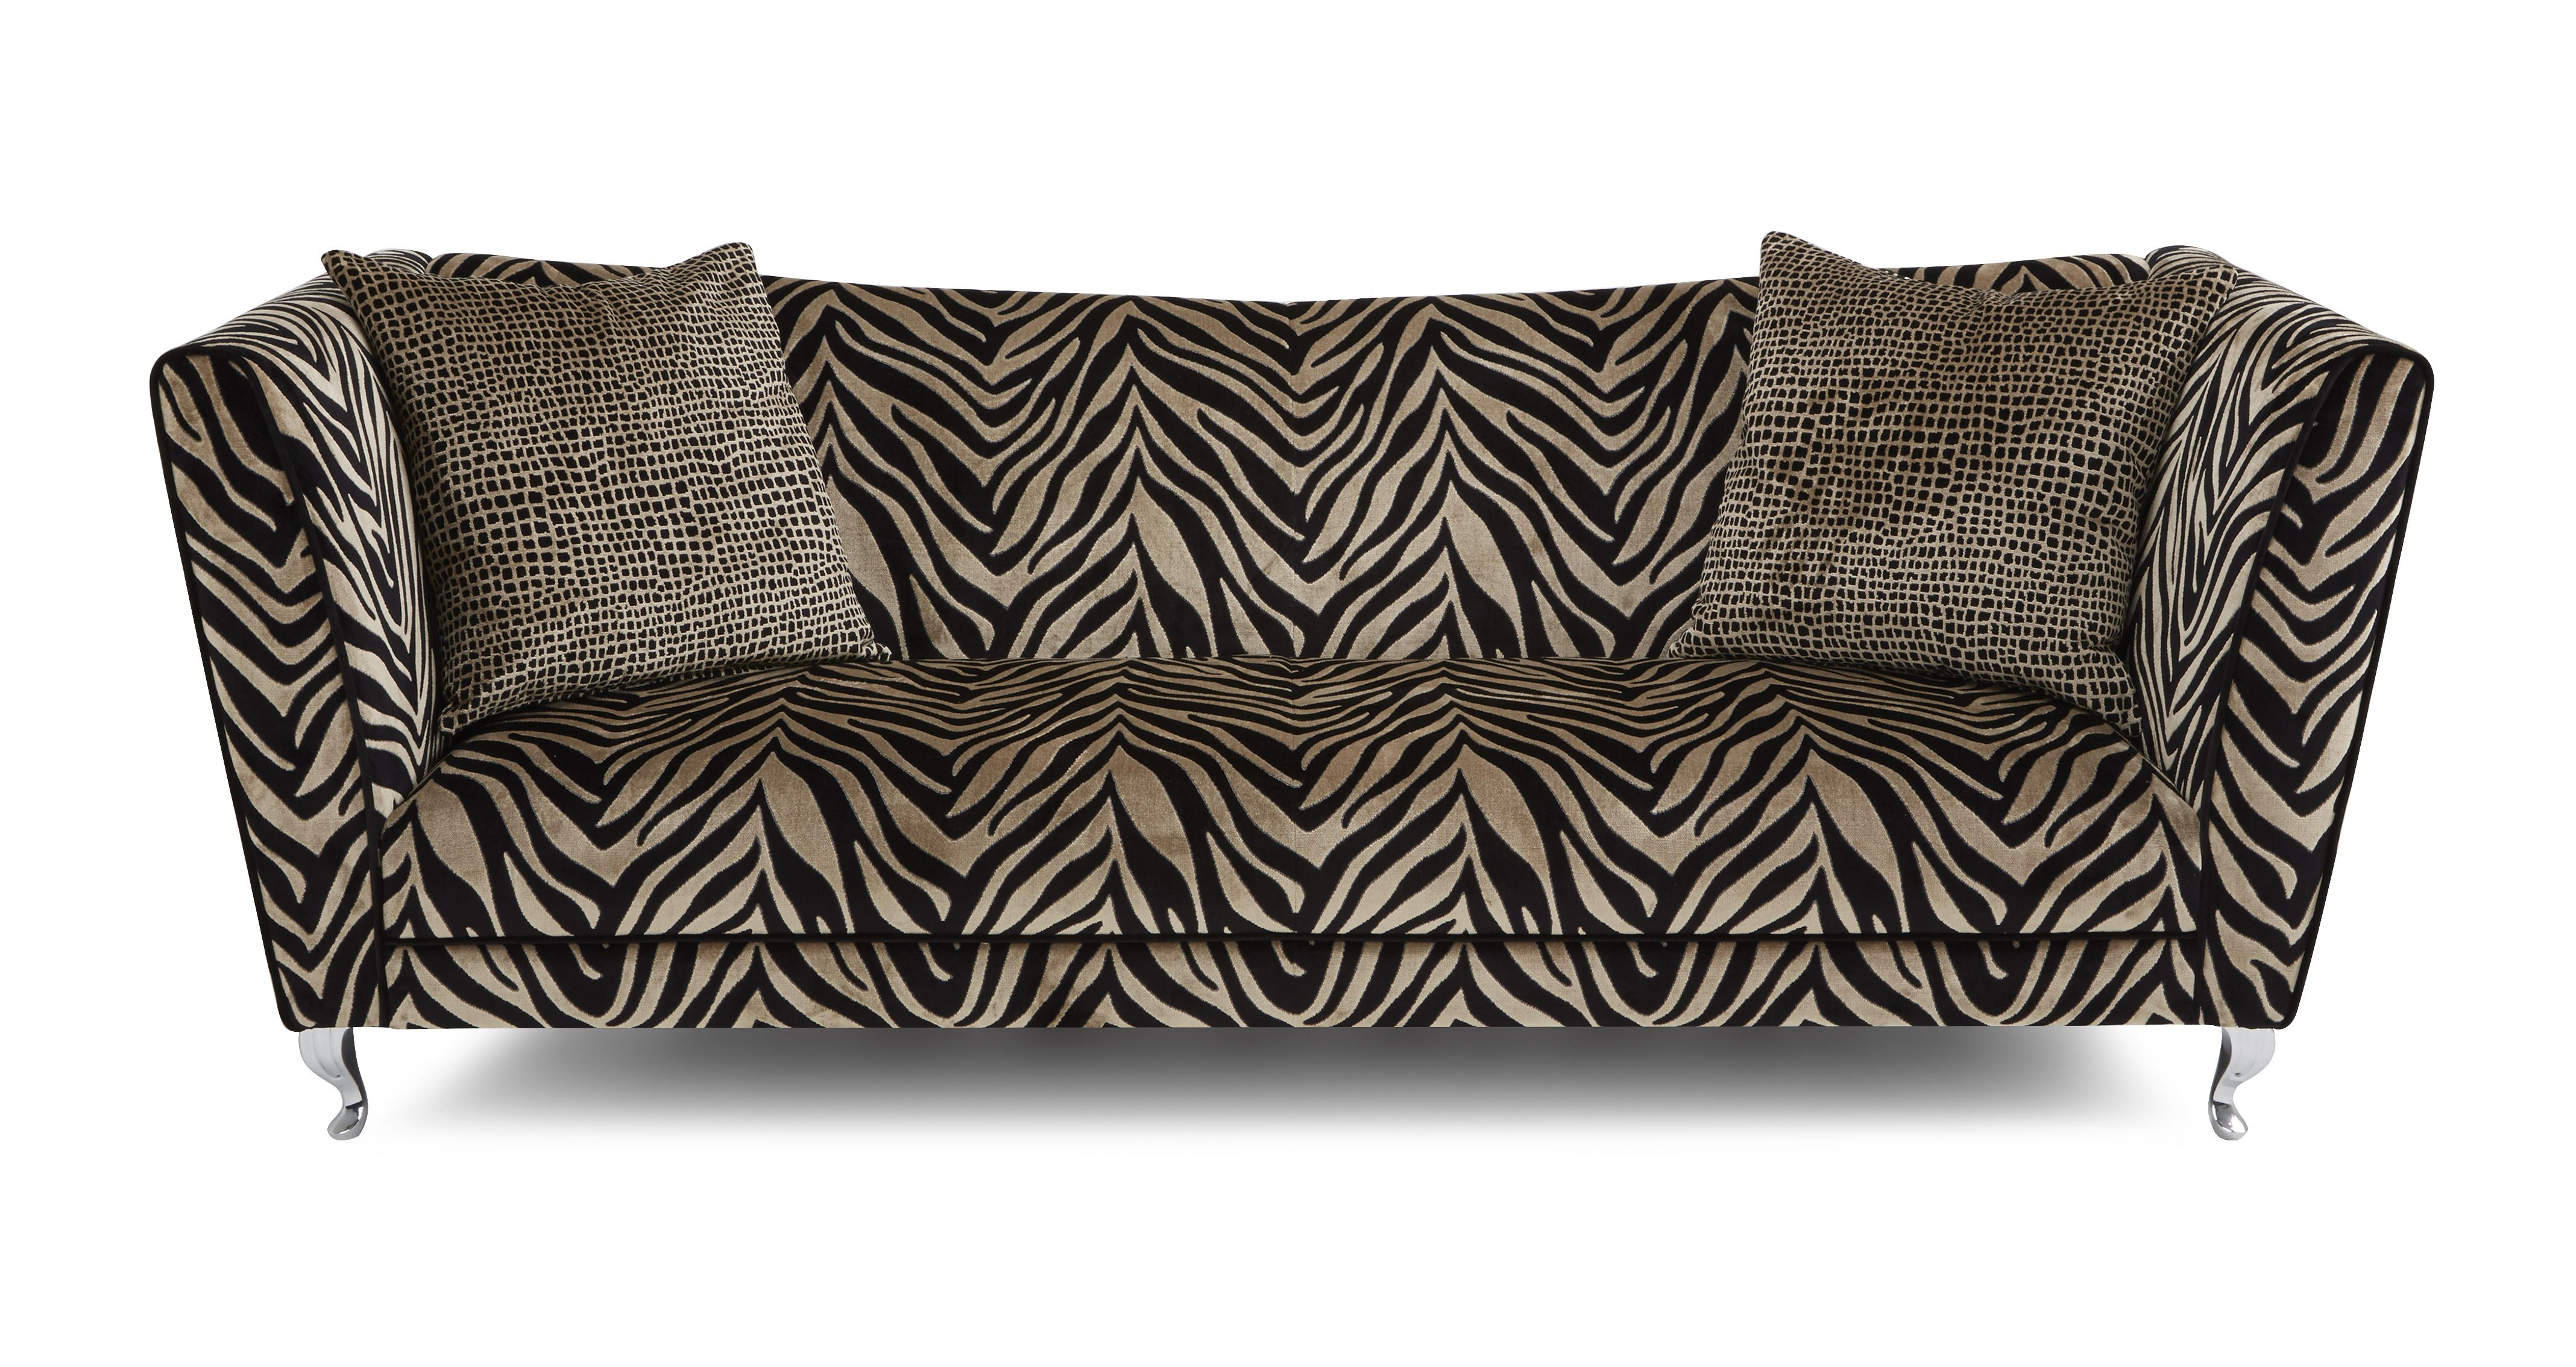 leopard print sofa appears quality bed brands madagascar tiger pattern 4 seater dfs